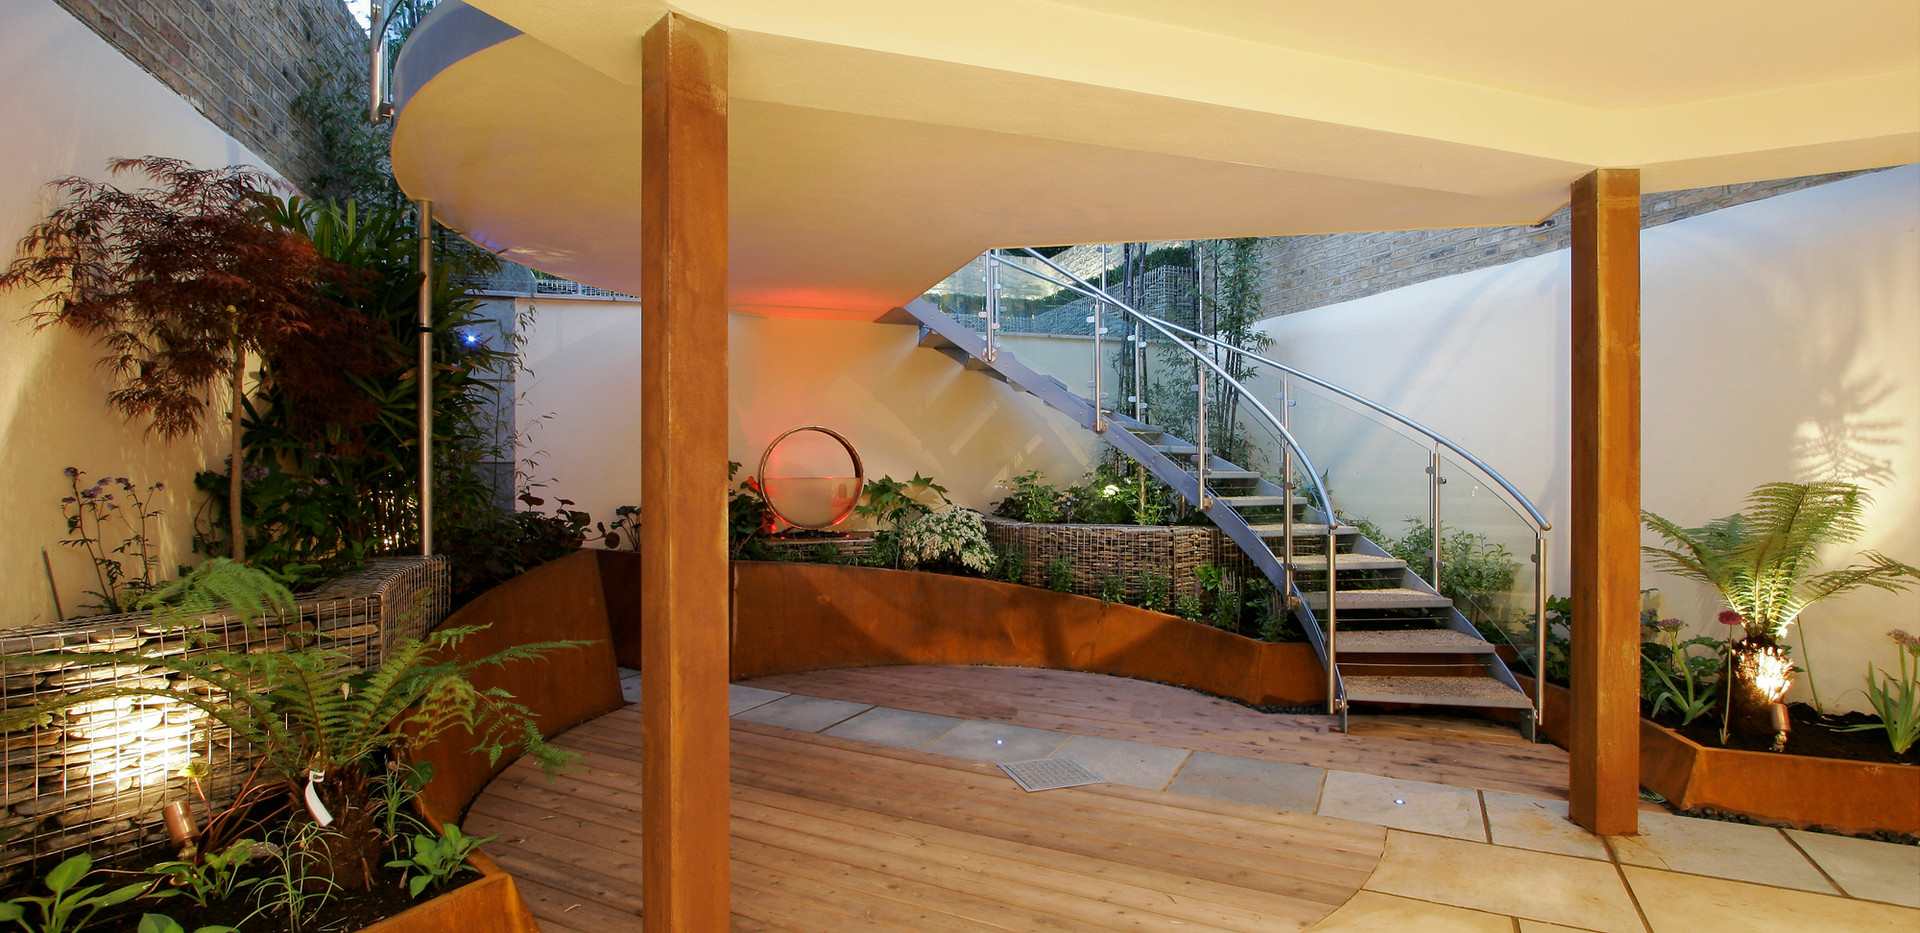 Why not have a mezzanine